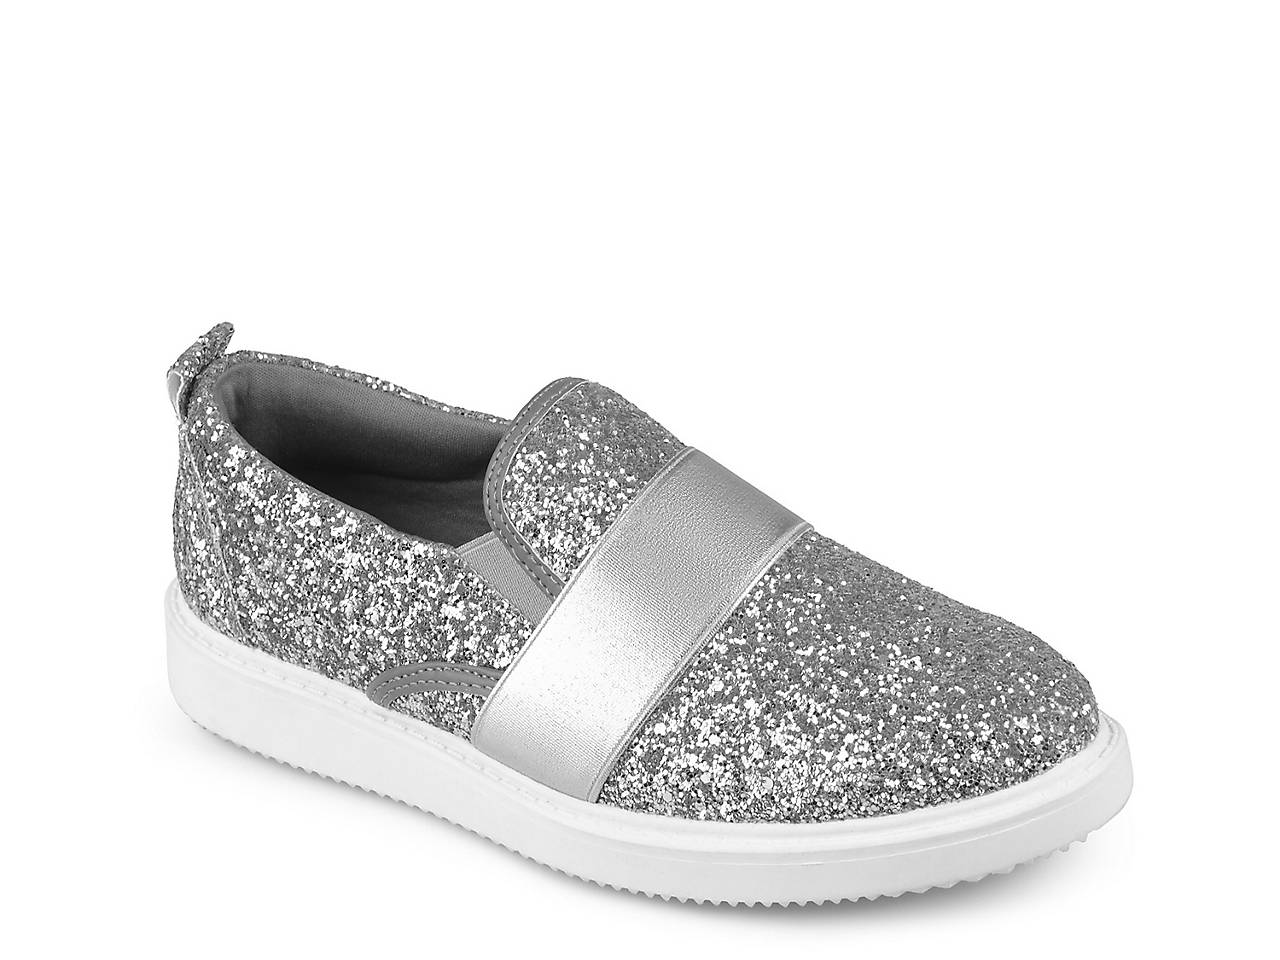 Journee Collection Luster ... Women's Sneakers buy cheap 100% original Y6qW9XEy